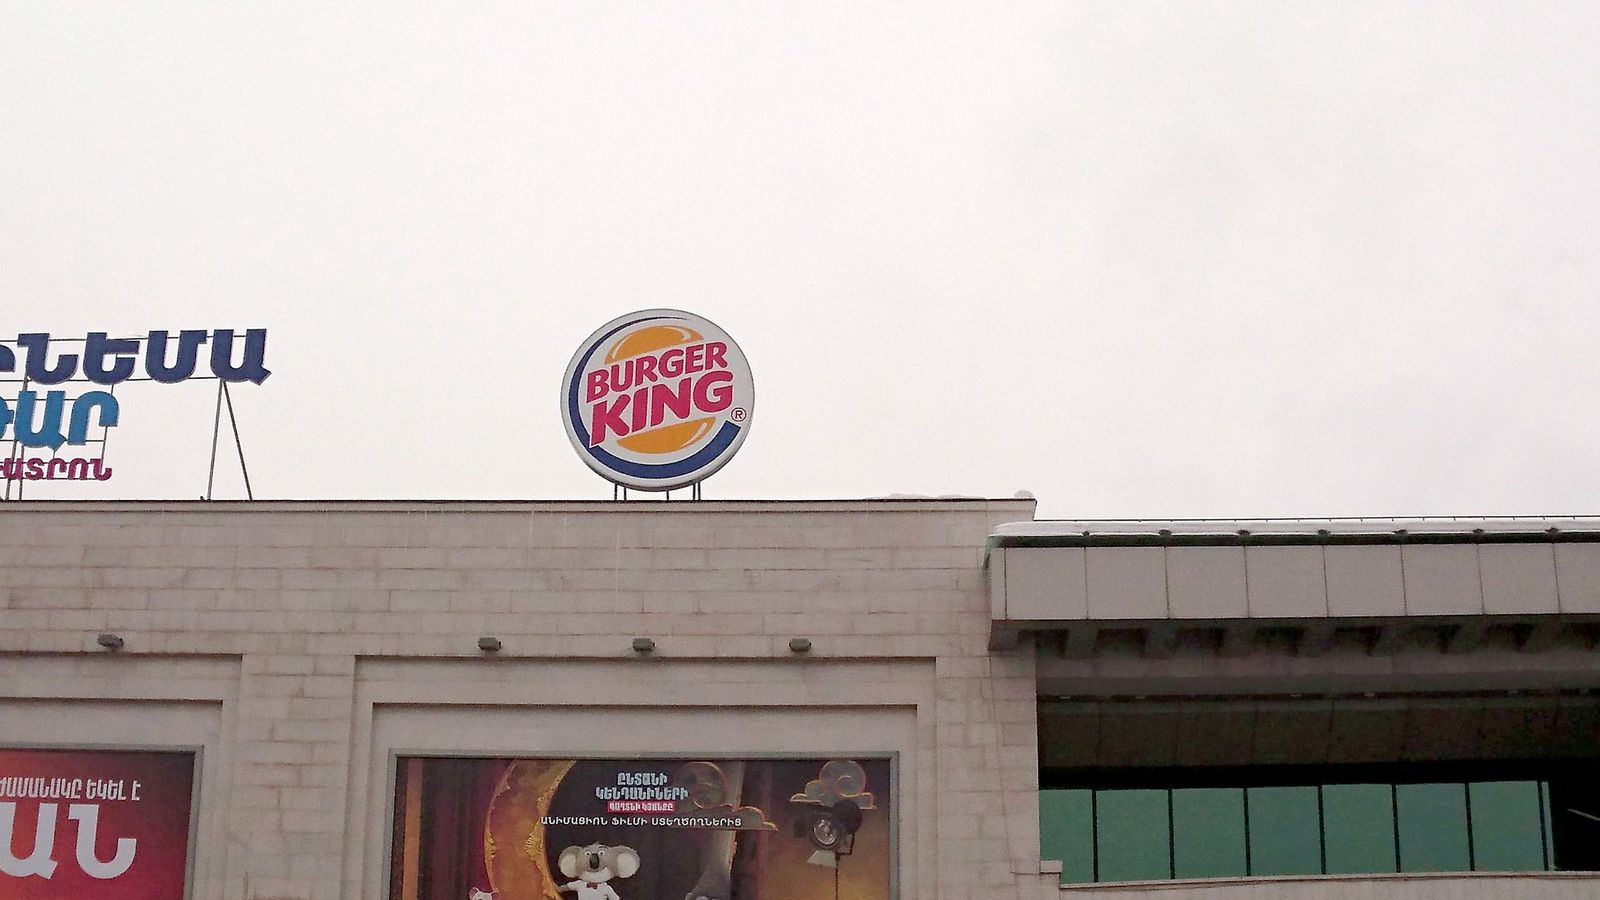 Burger King light box logo sign on the roof top made of aluminum and acrylic for restaurant brand outdoor promotion